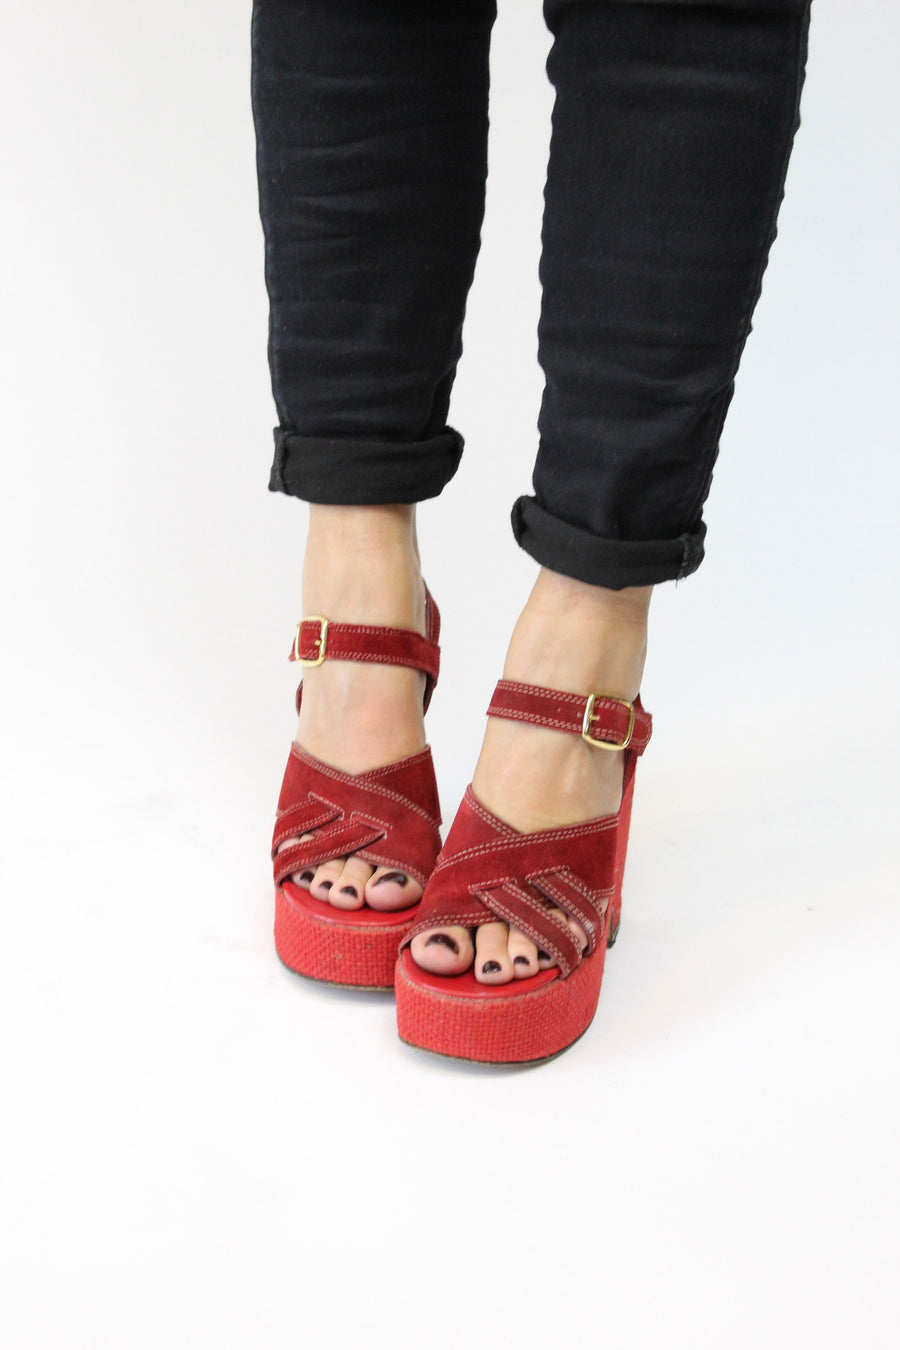 1970s platform wedge shoes  | vintage suede sandals  | size 6 us